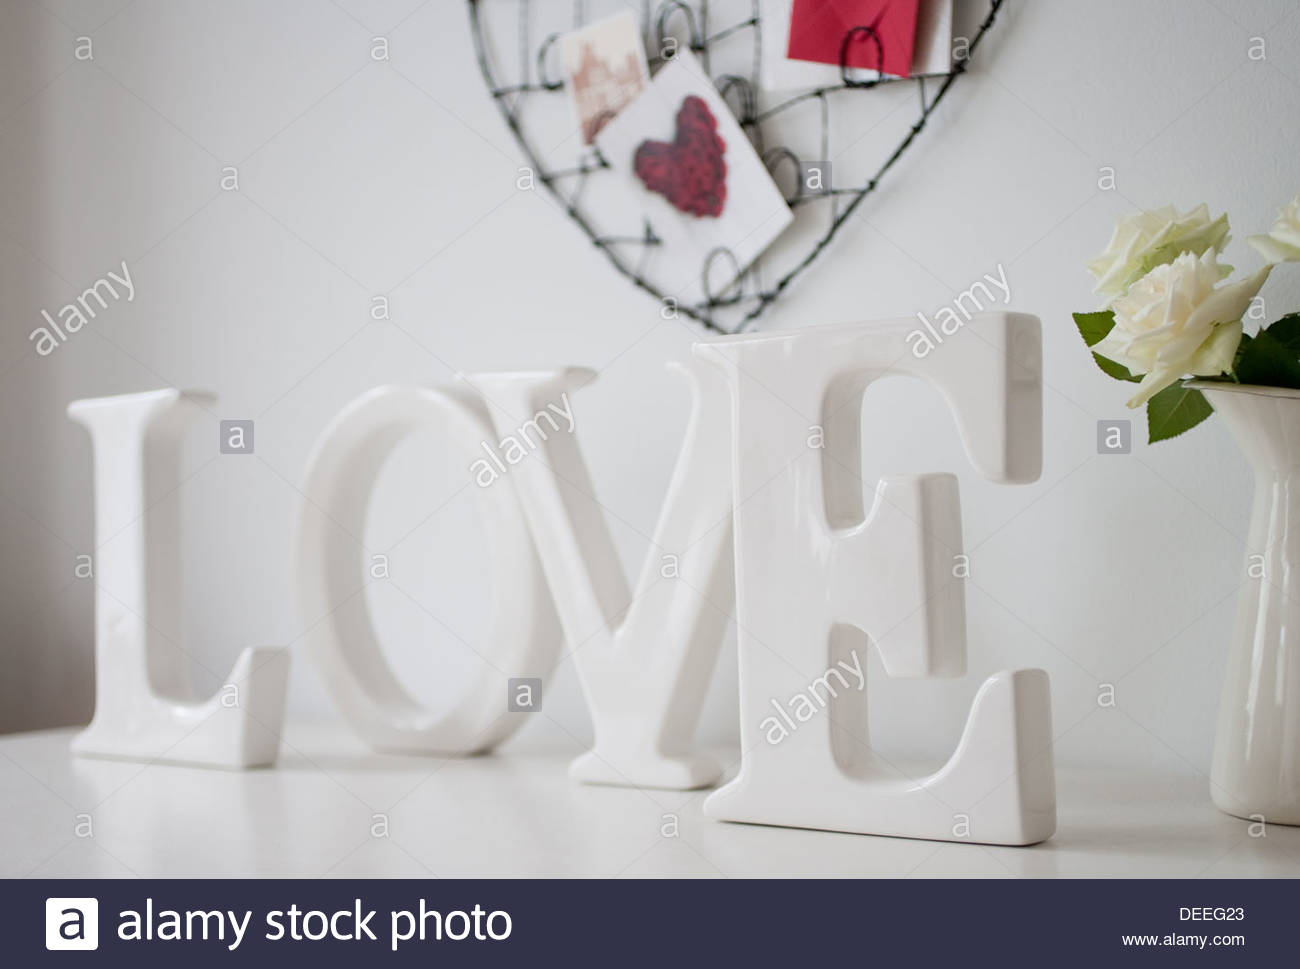 letters stockfotos letters bilder alamy. Black Bedroom Furniture Sets. Home Design Ideas